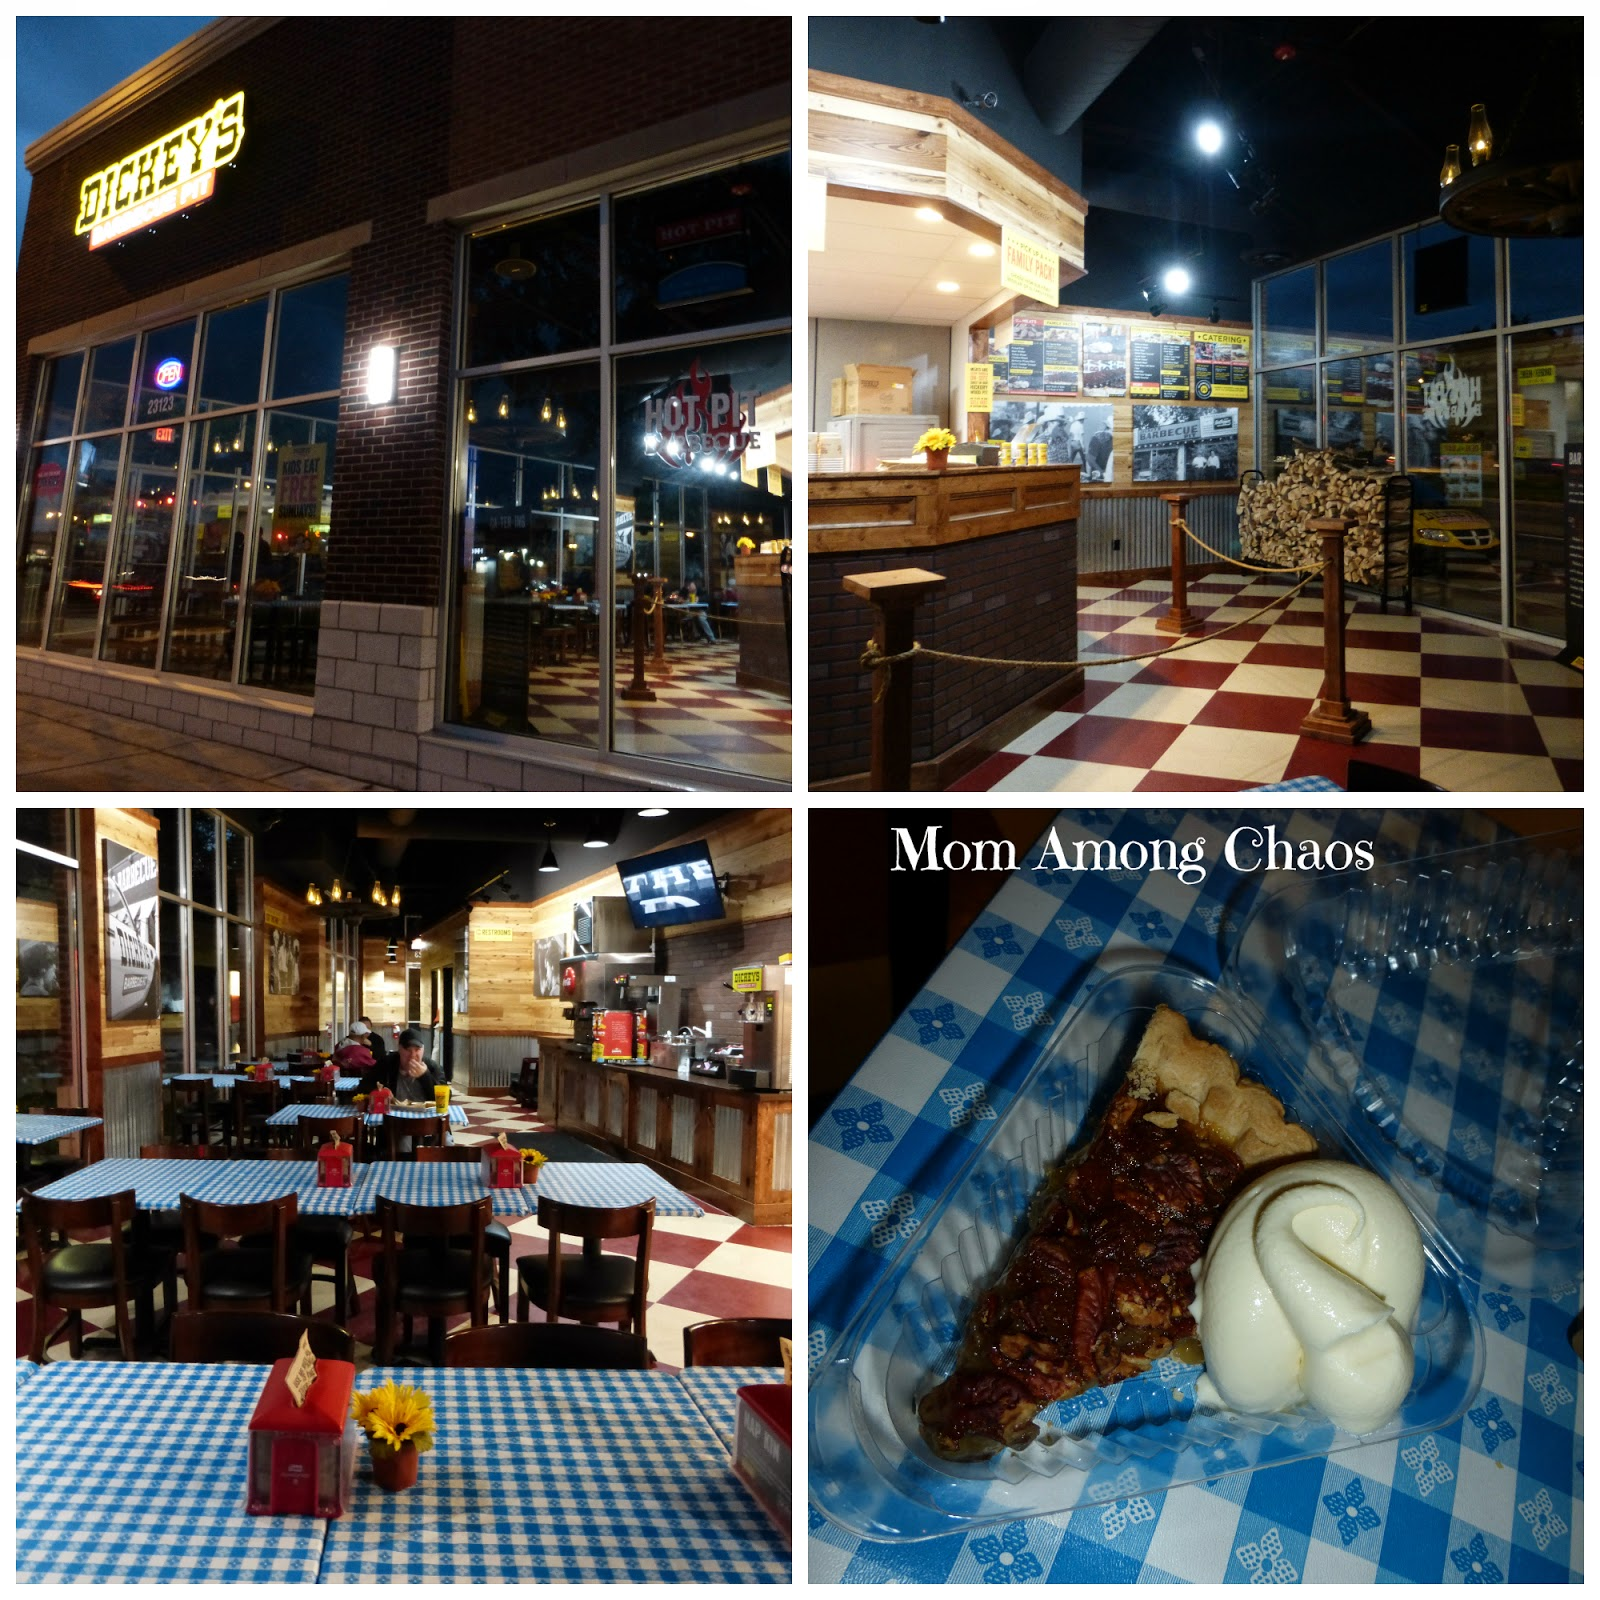 coupon, discount, review, restaurant, BBQ, fast casual, Detroit, Ferndale, Big Yellow Cup club, kids eat free, free, free ice cream, Dickey's